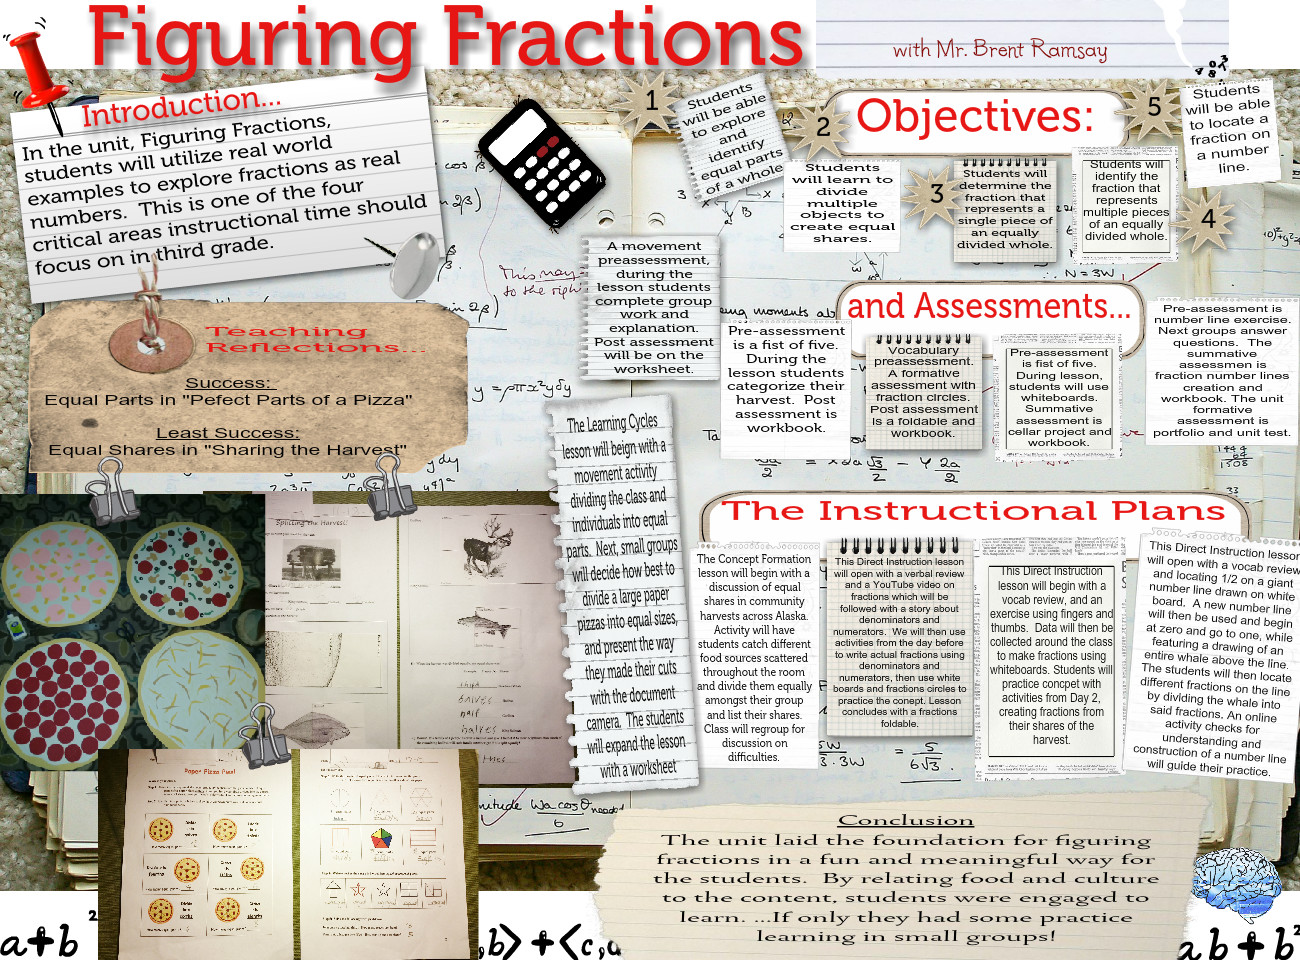 [2015] Brent Ramsay: Figuring Fractions